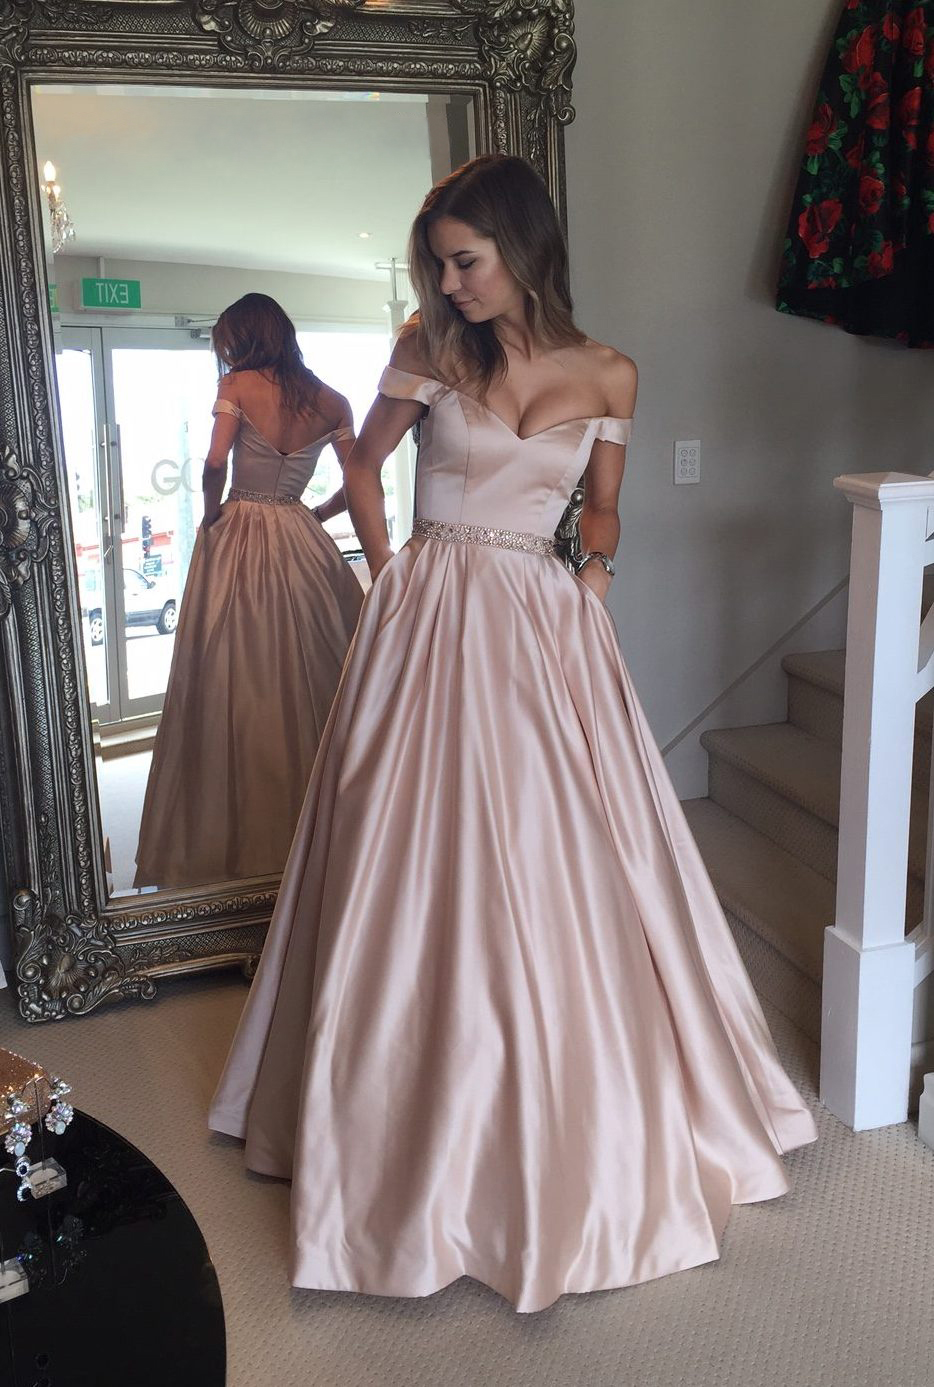 b9c8a8f8fa Elegant Prom Dress Pink Prom Dresses Off Shoulder Satin Long Prom Gown  Evening Dress on Storenvy